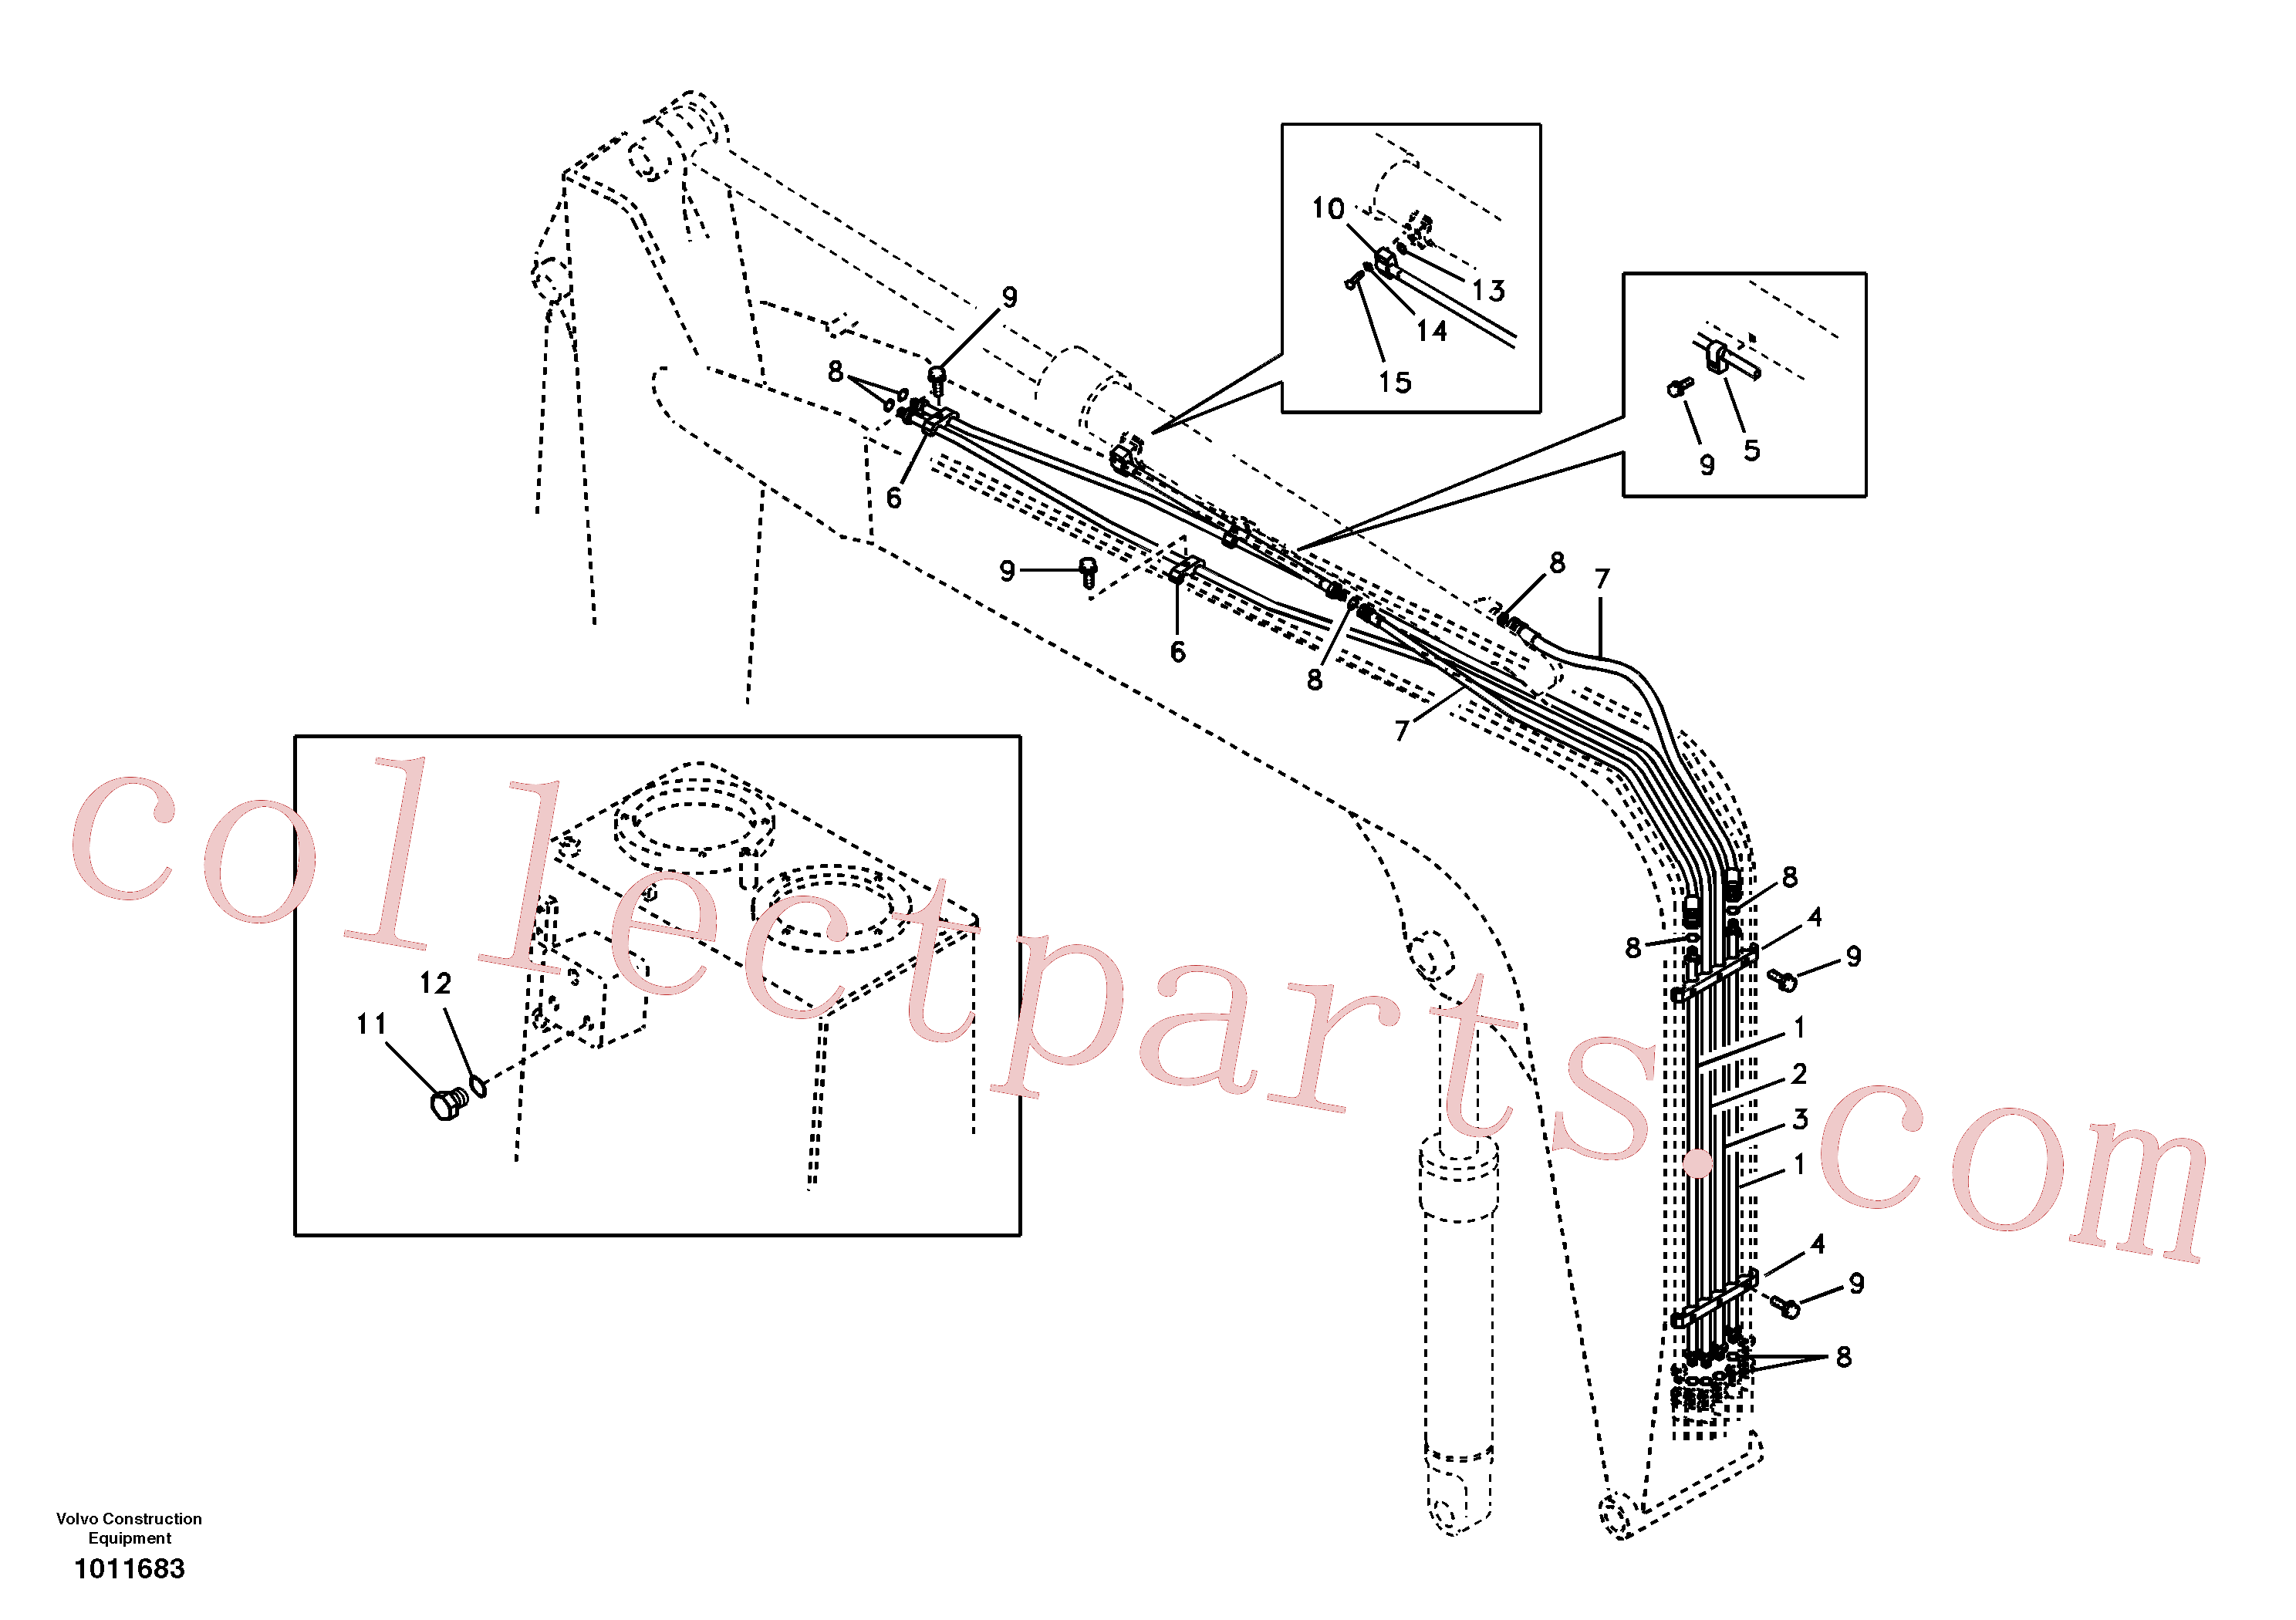 VOE14519076 for Volvo Working hydraulic, dipper arm cylinder on boom.(1011683 assembly)